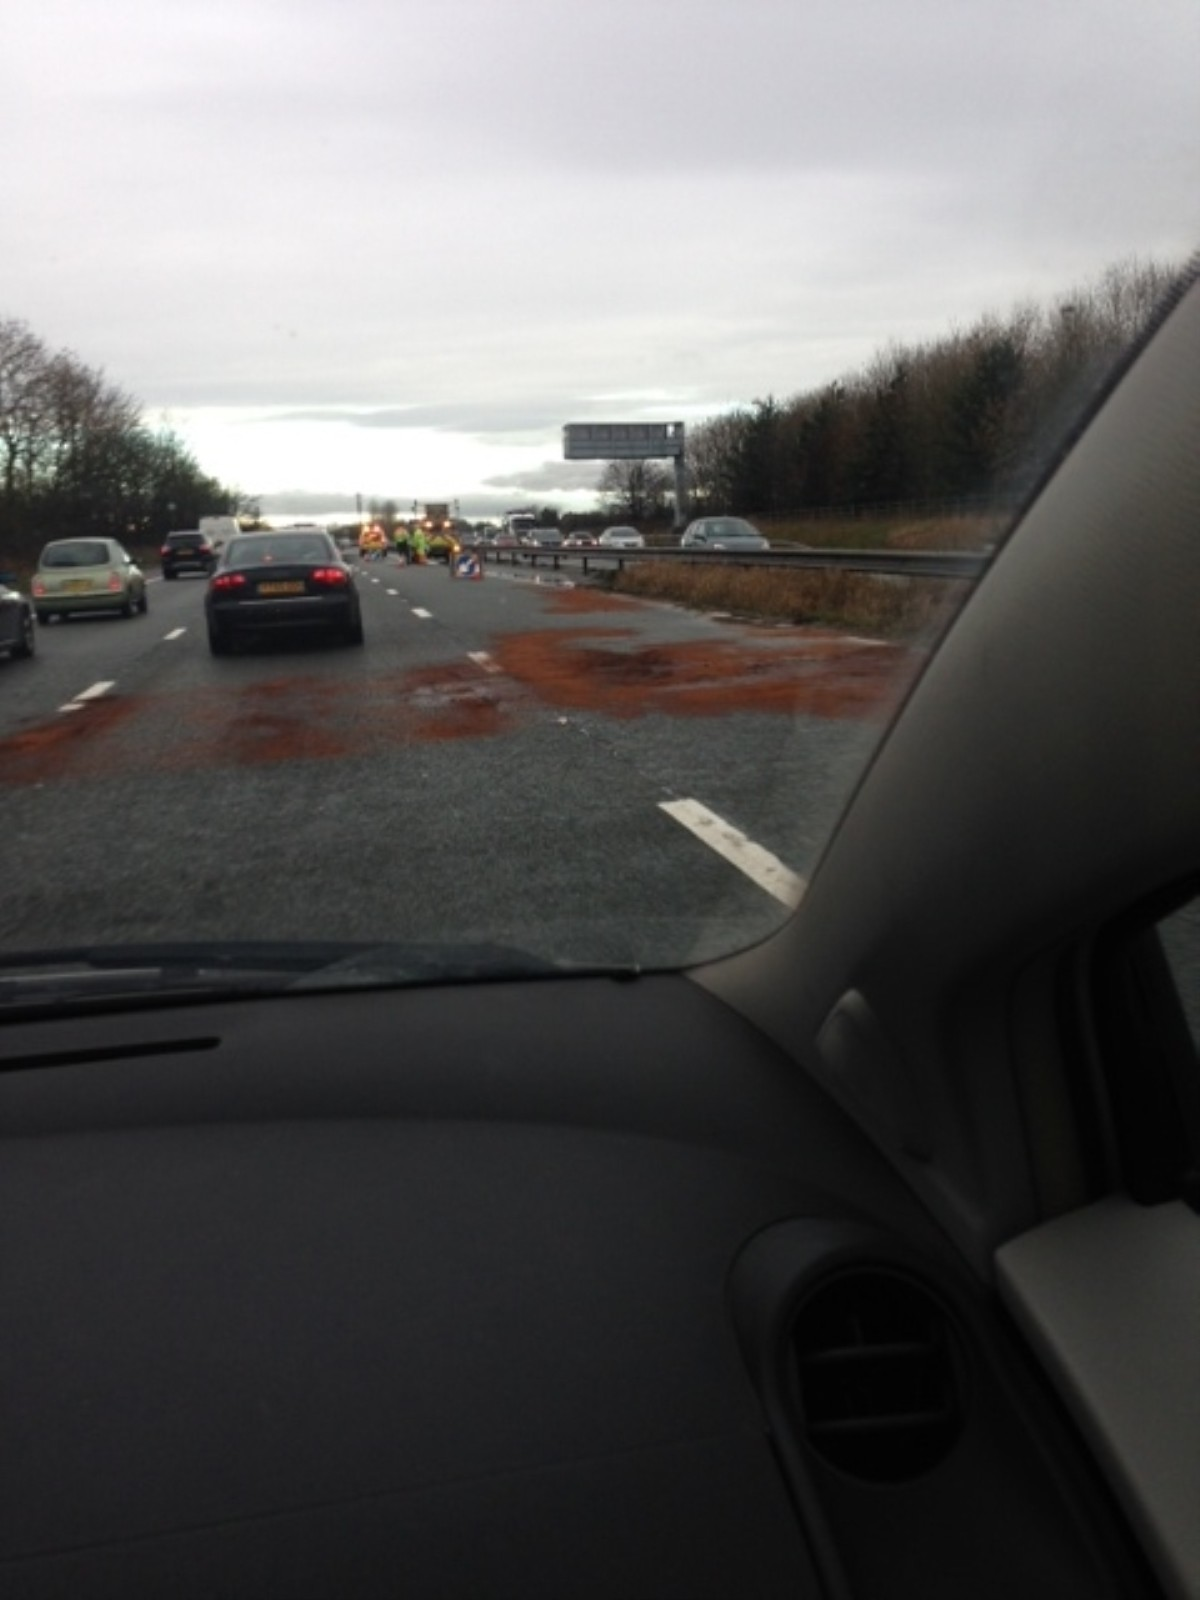 The scene on the M56